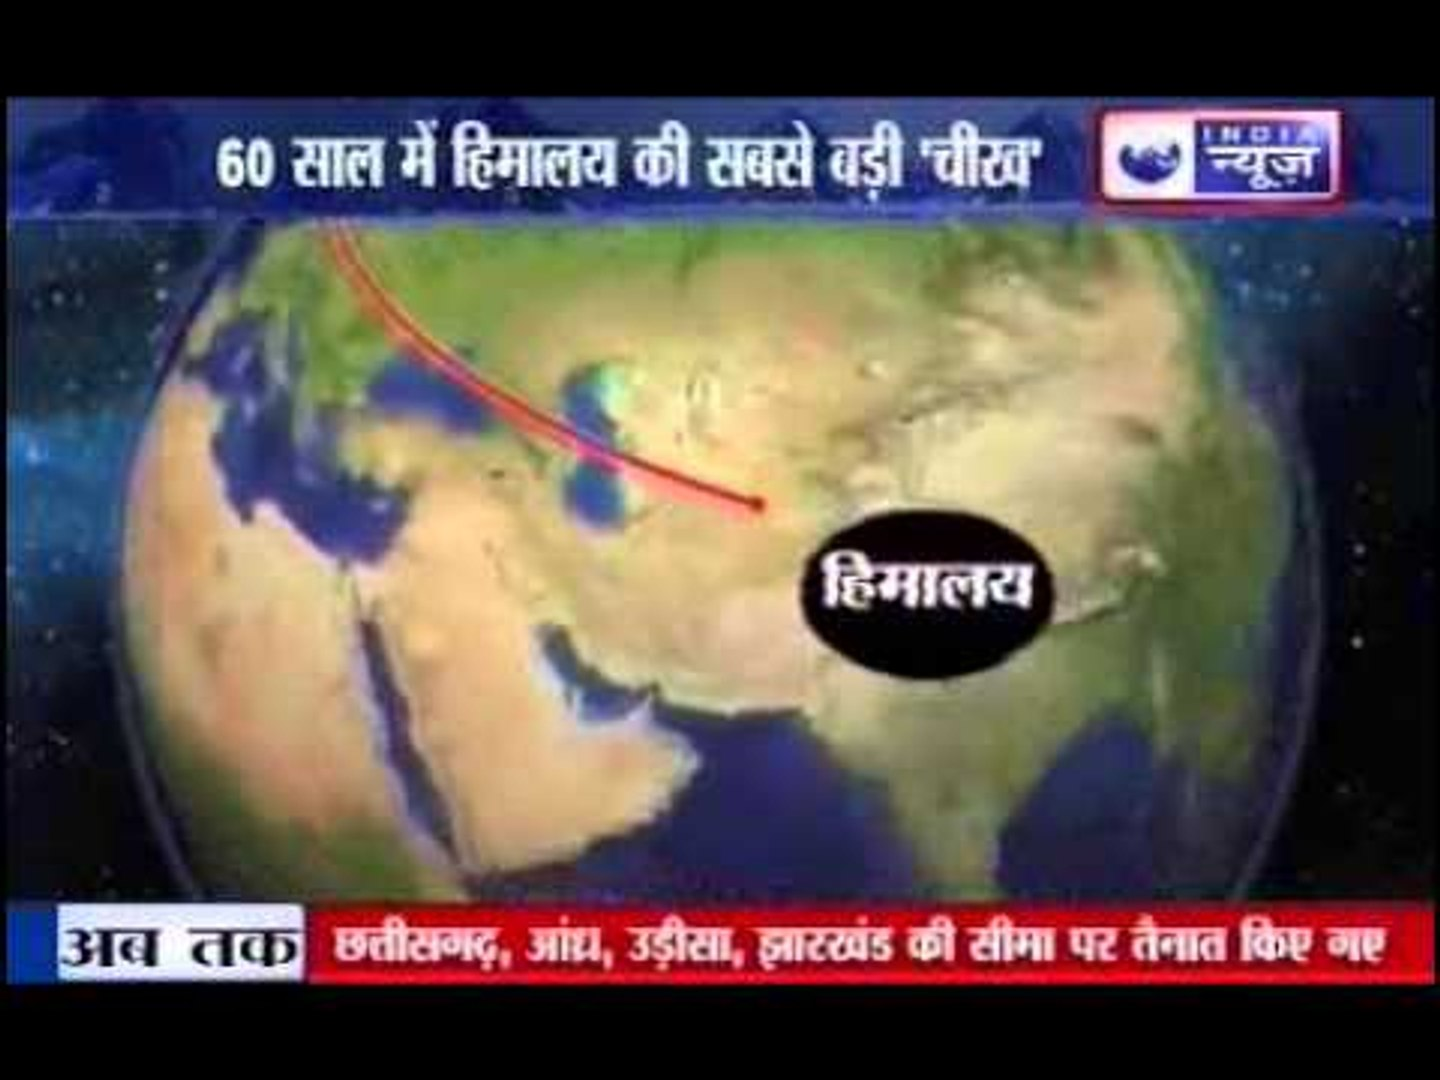 Himalayas Documentary: India News Exclusive